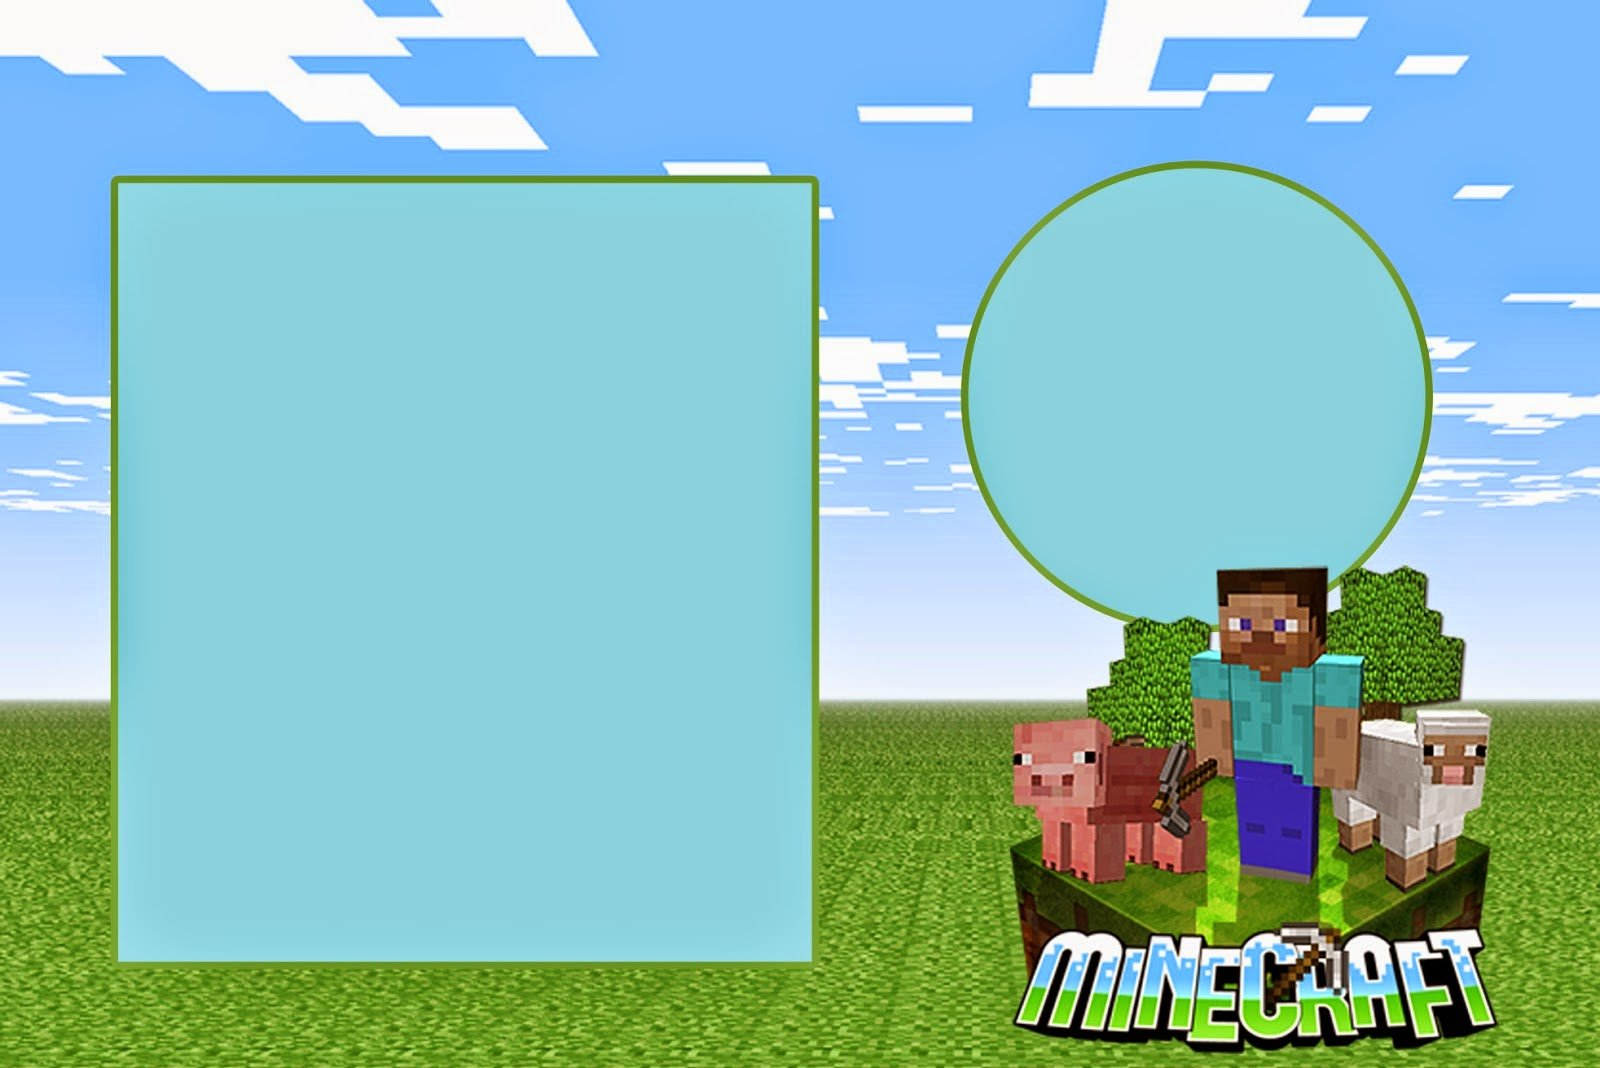 Minecraft Free Printable Kit Fabulous Minecraft Invitation